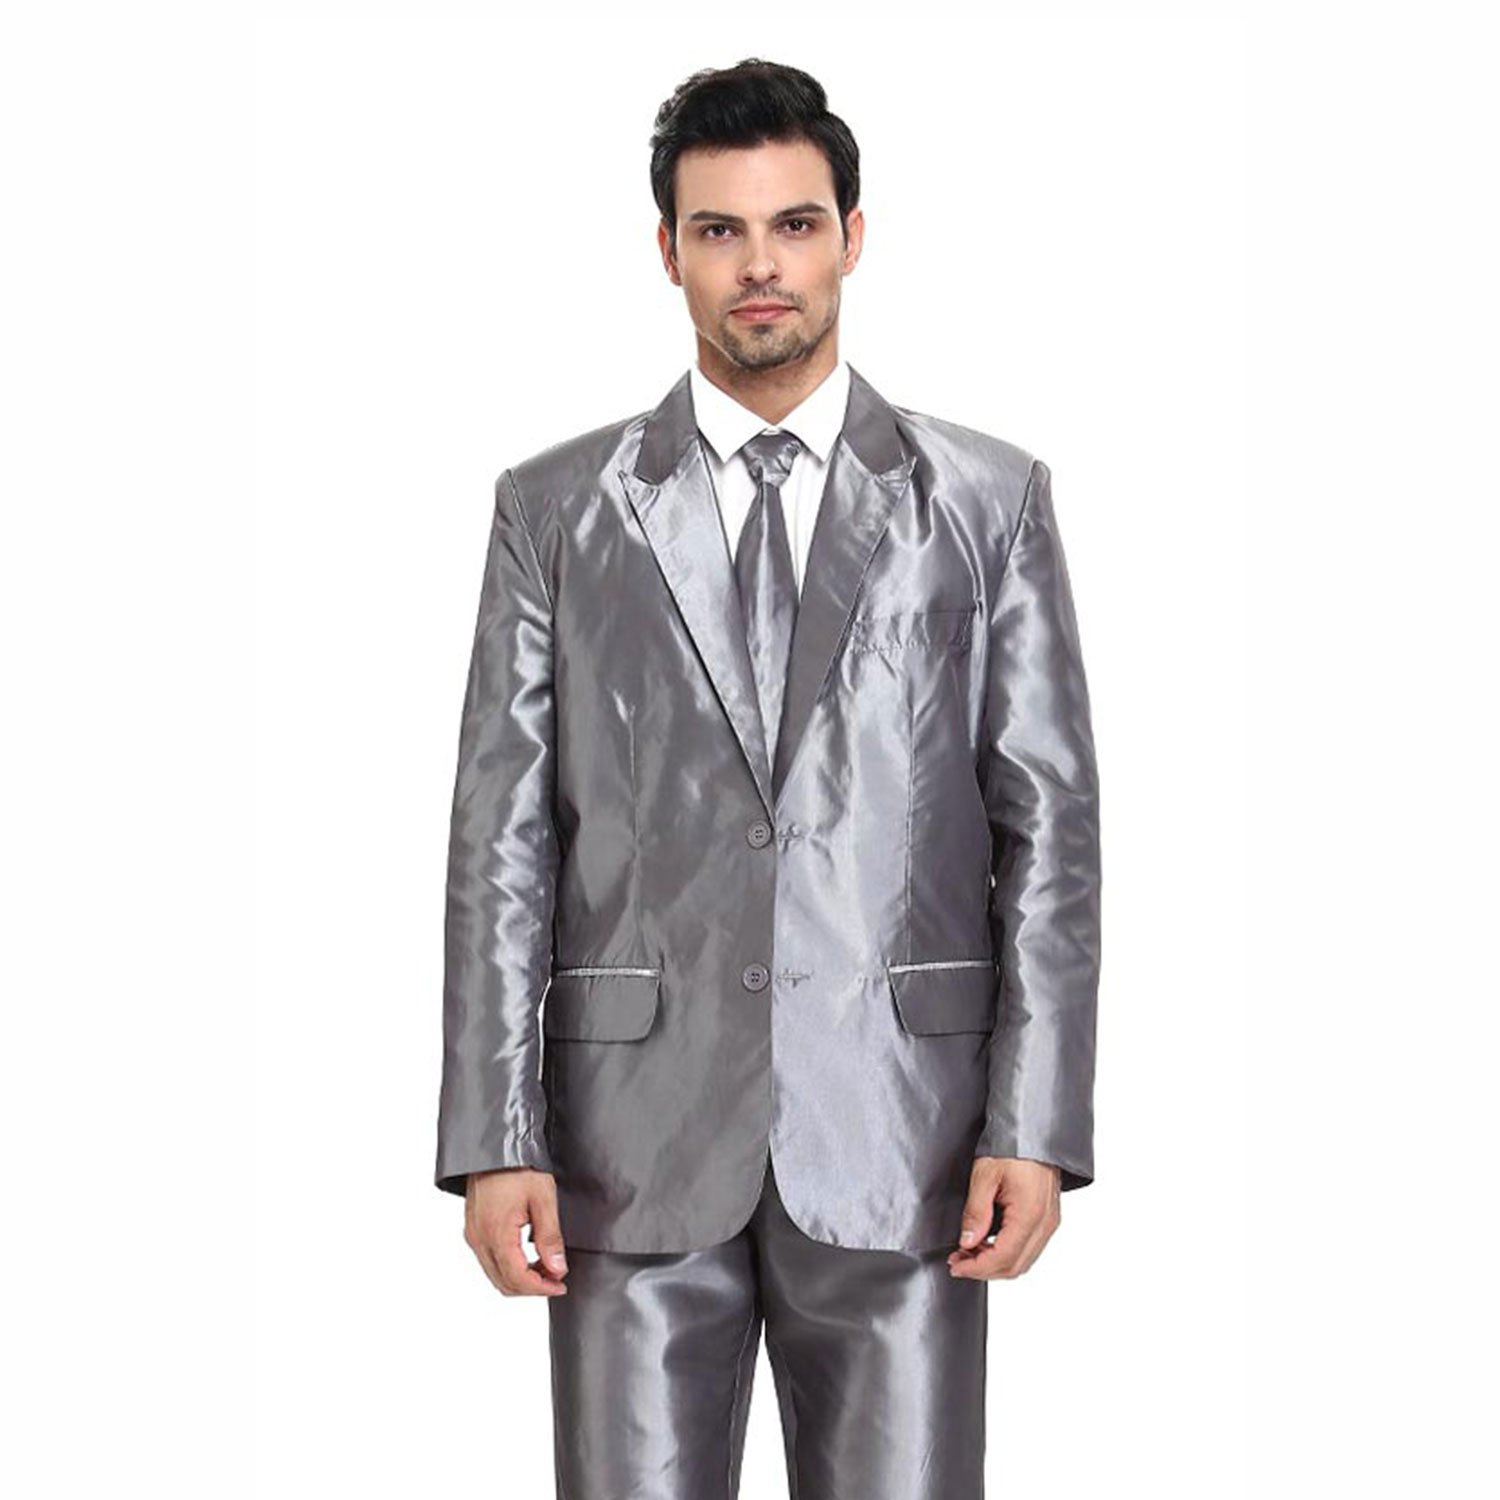 Christmas Party Suit Men.Ugly Mens Christmas Party Suit Solid Shiny Silver